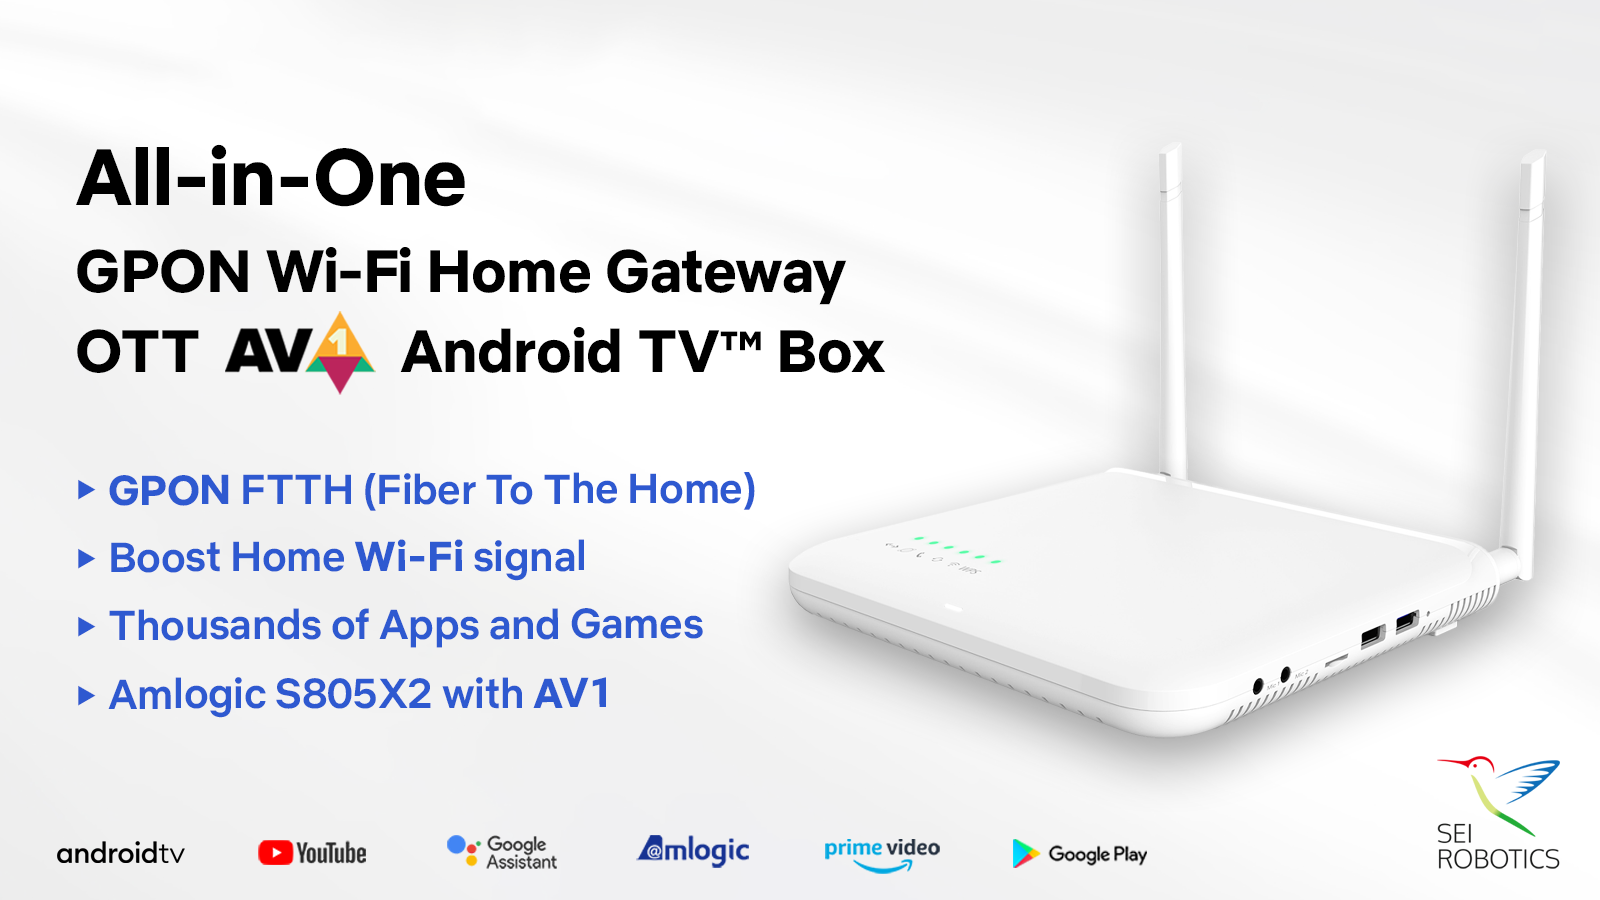 SEI presents the World's First All-in-One GPON Wi-Fi Home-Gateway Android TV Box